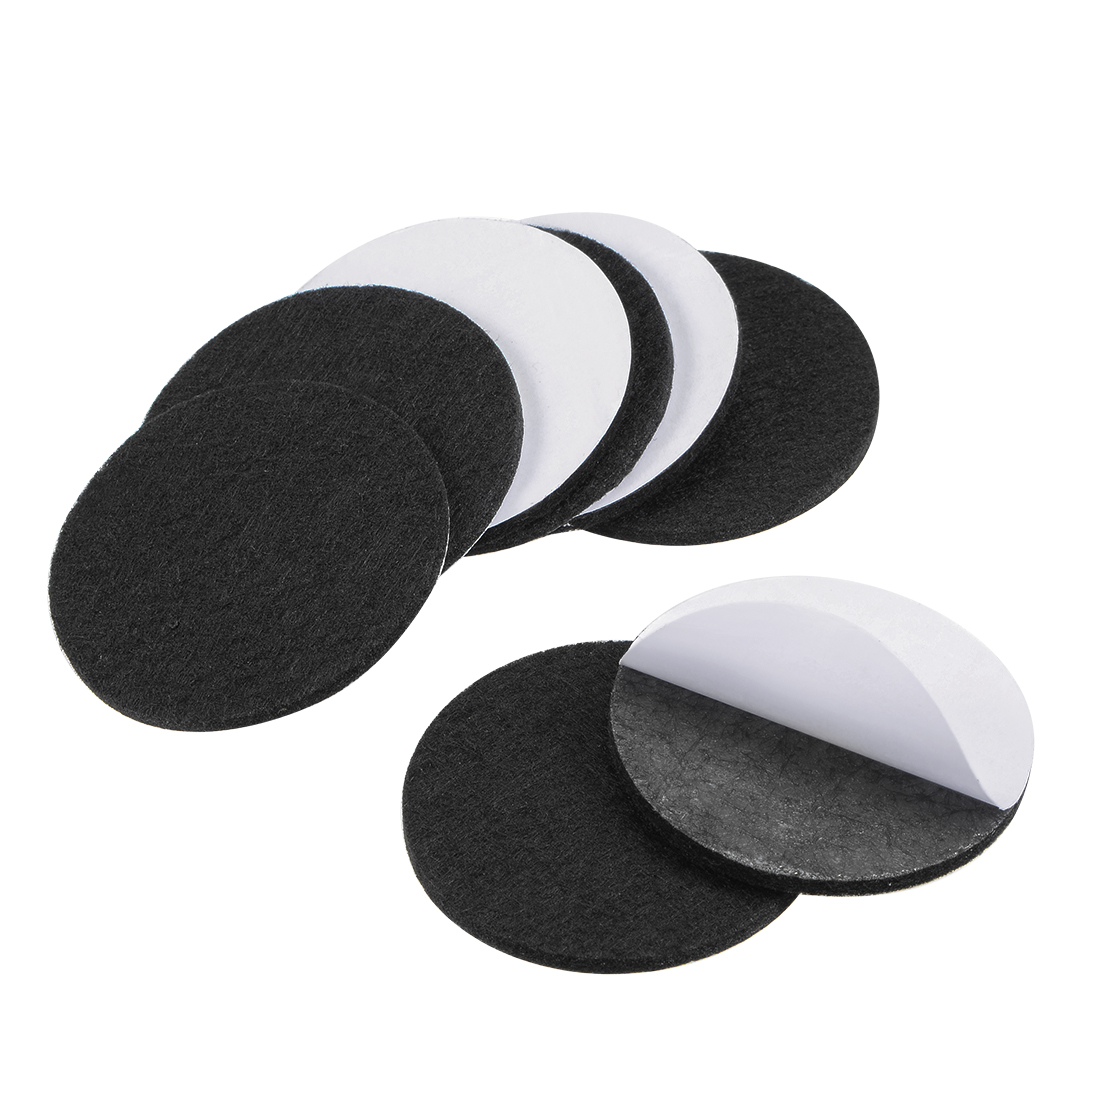 Furniture Pads Adhesive Felt Pads 50mm Diameter 3mm Thick Round Black 8Pcs